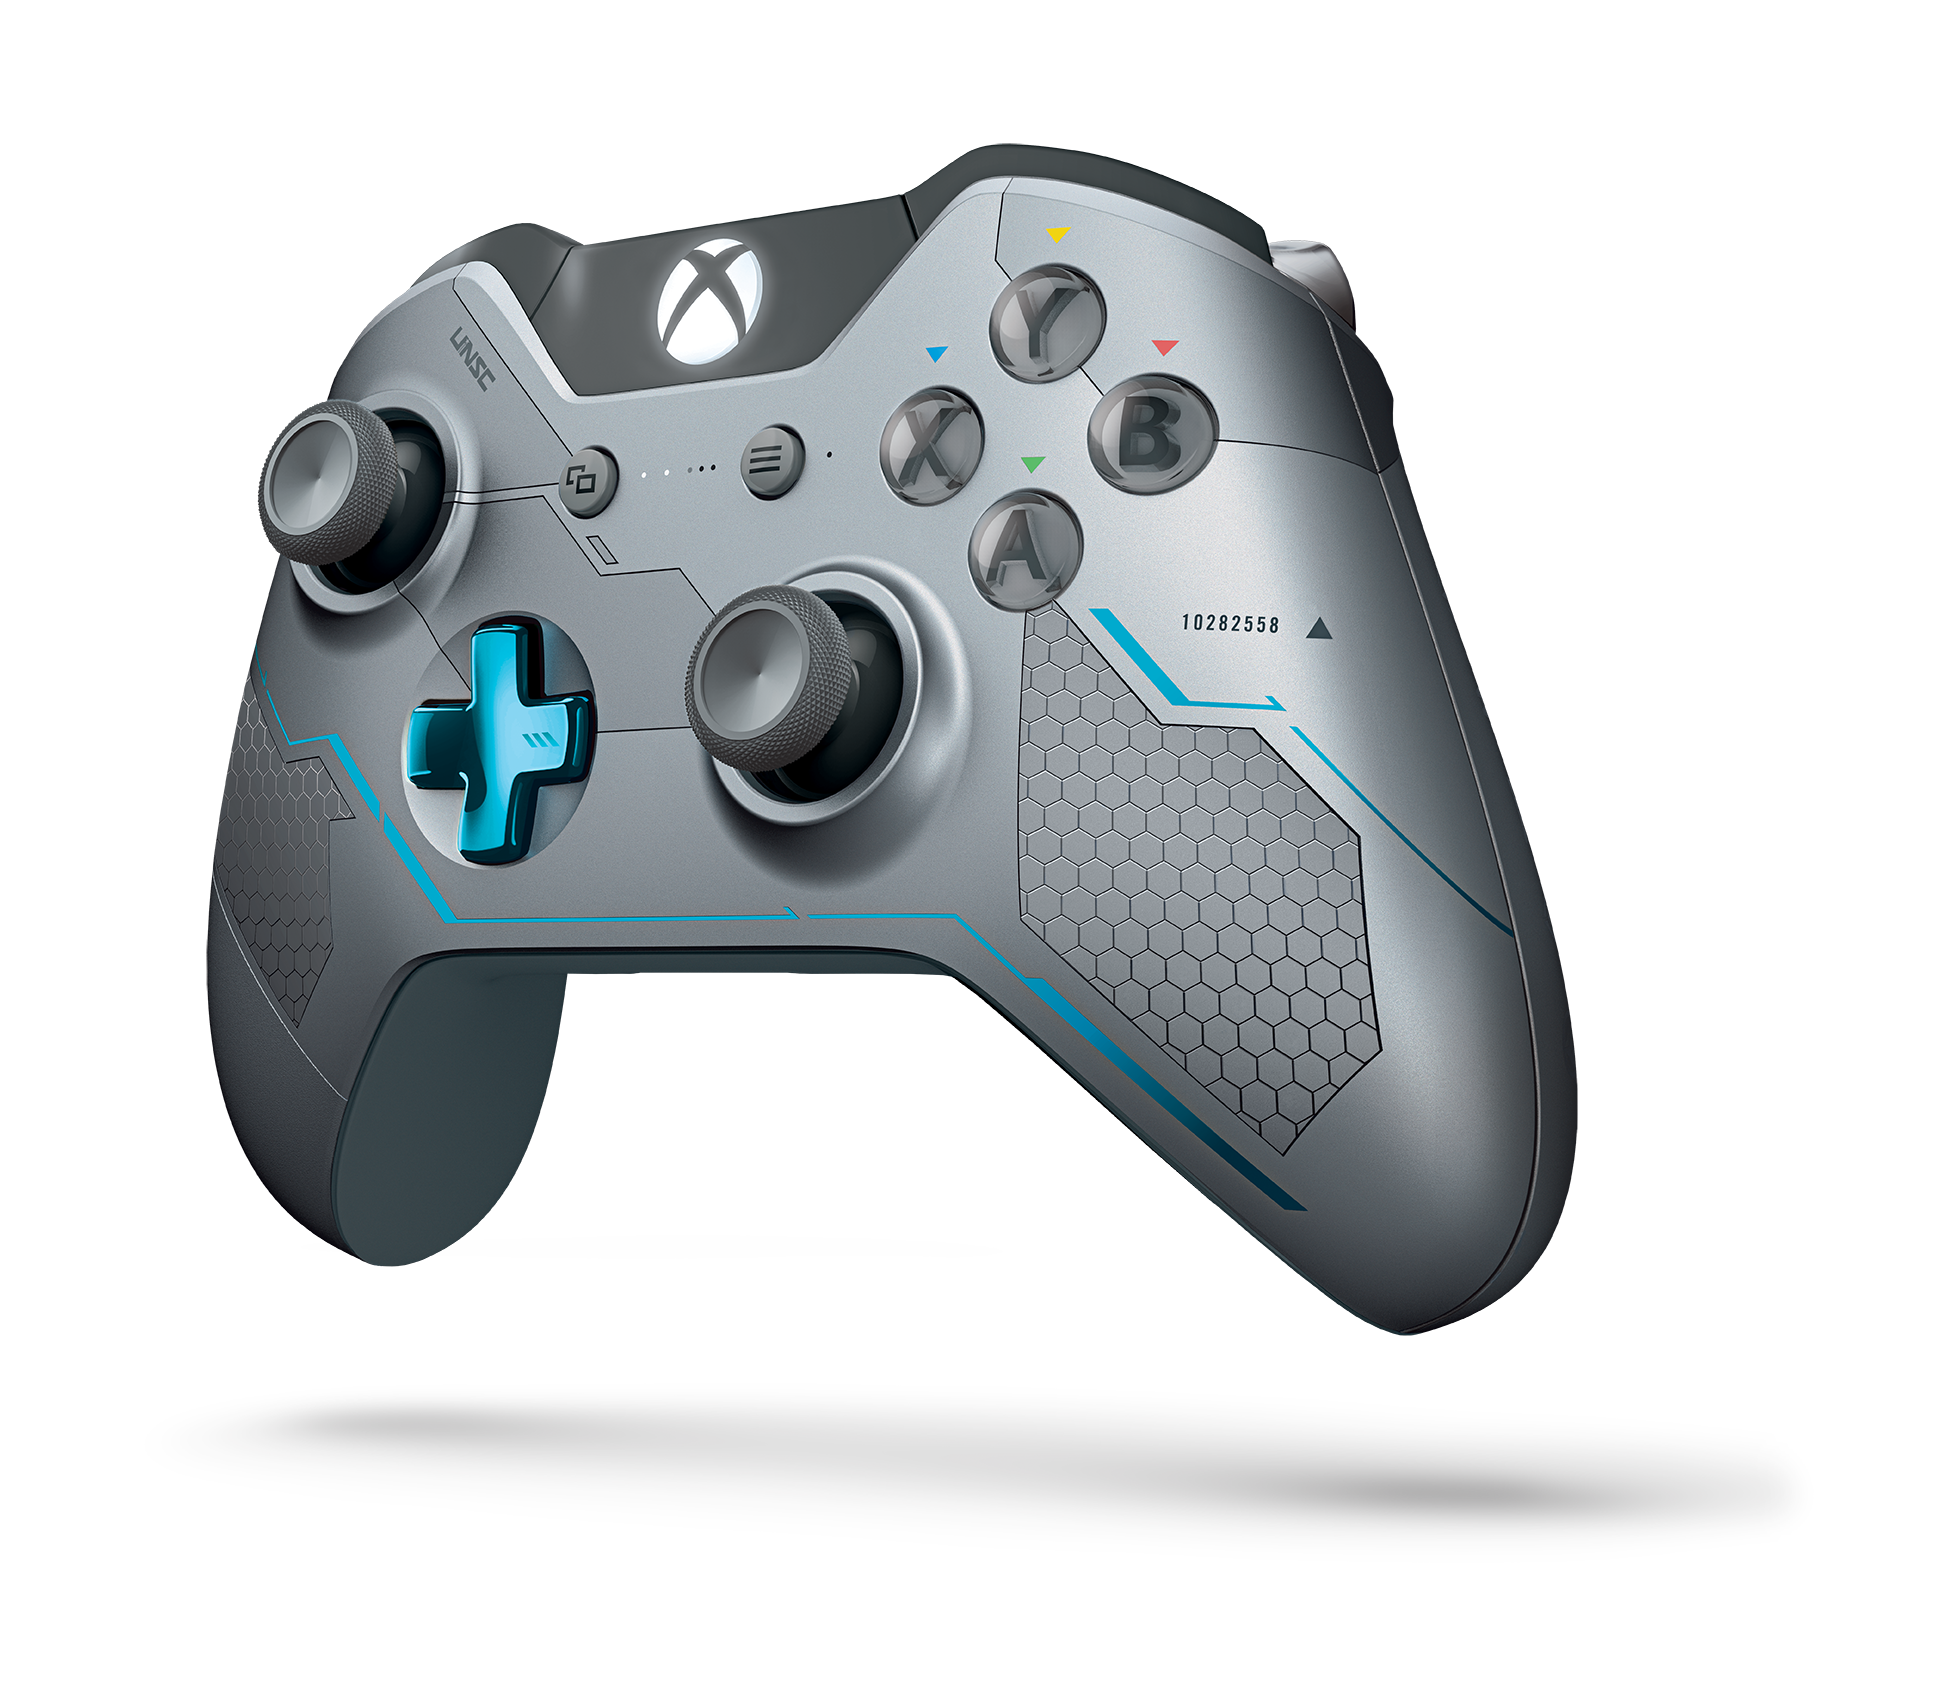 Xbox-One-Limited-Edition-Halo-5-Locke-Controller-Left-Render-png